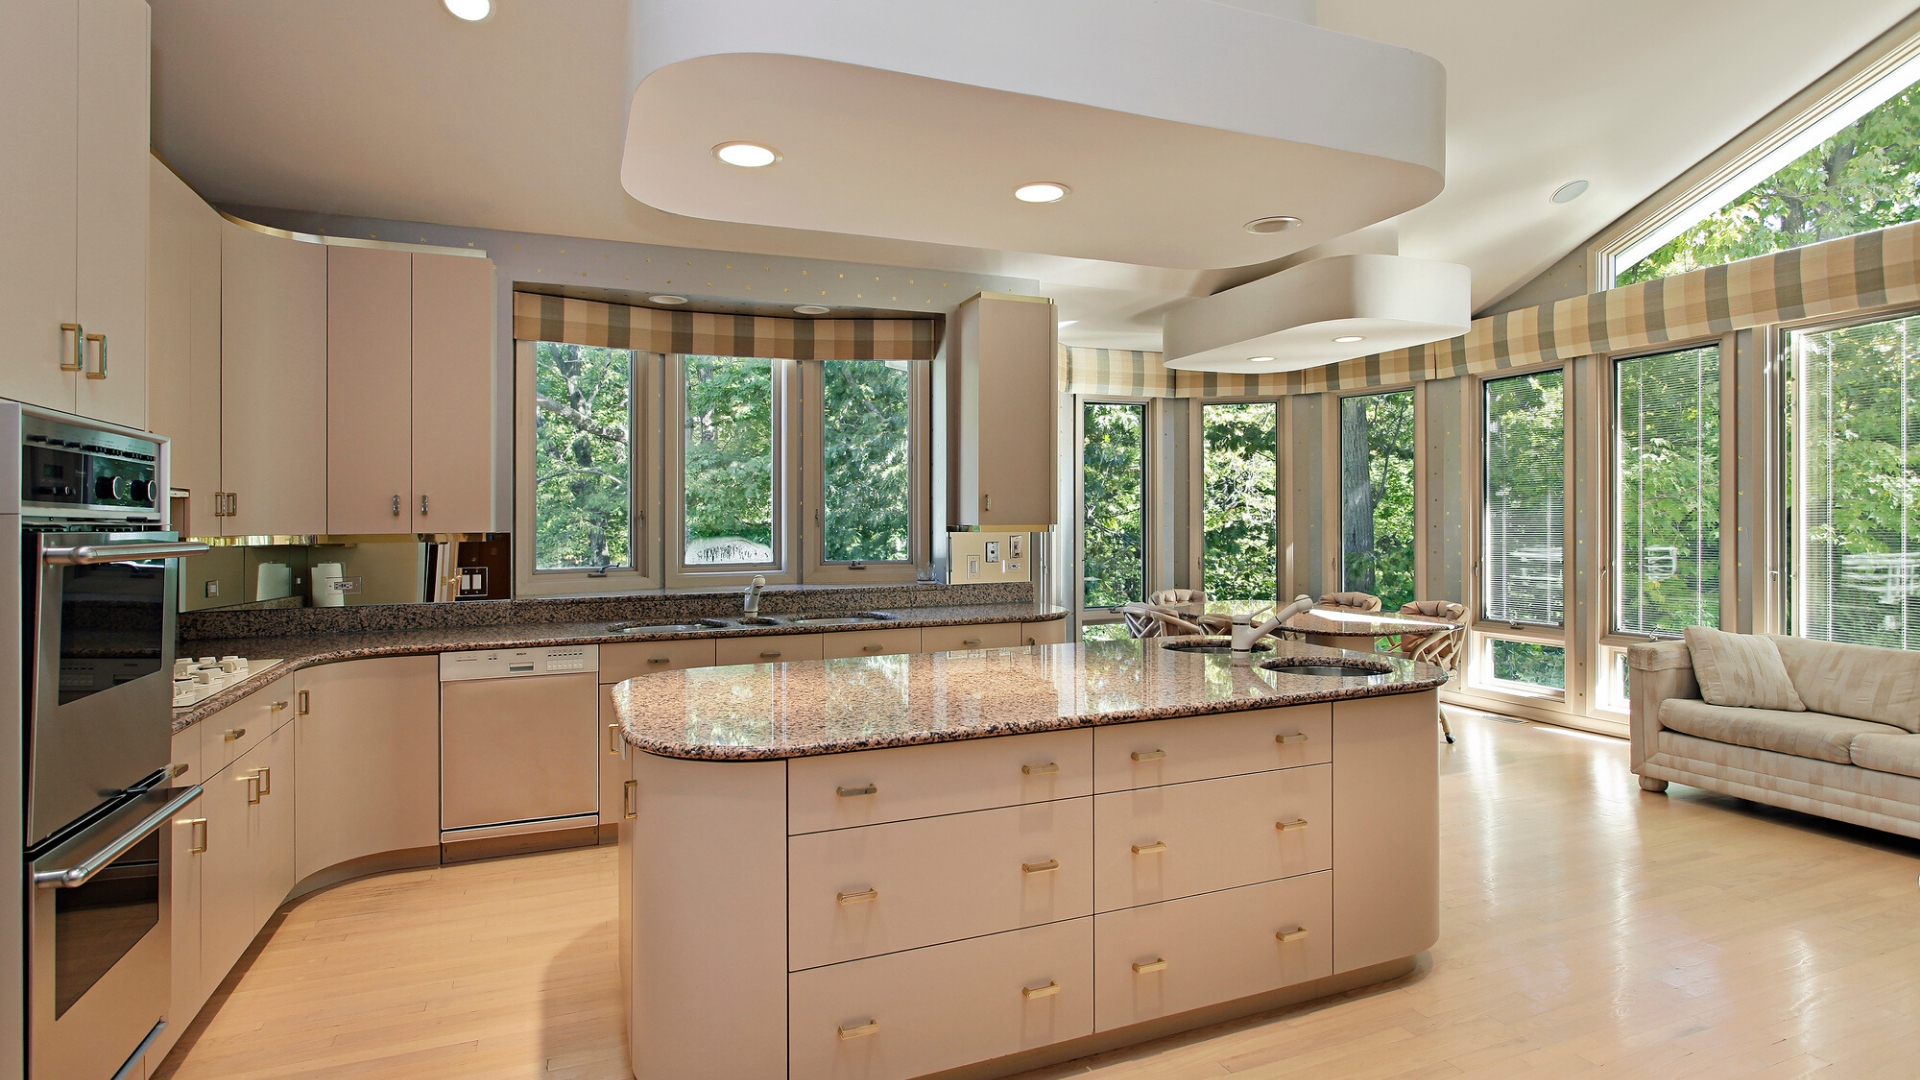 mcdermott art deco kitchen design